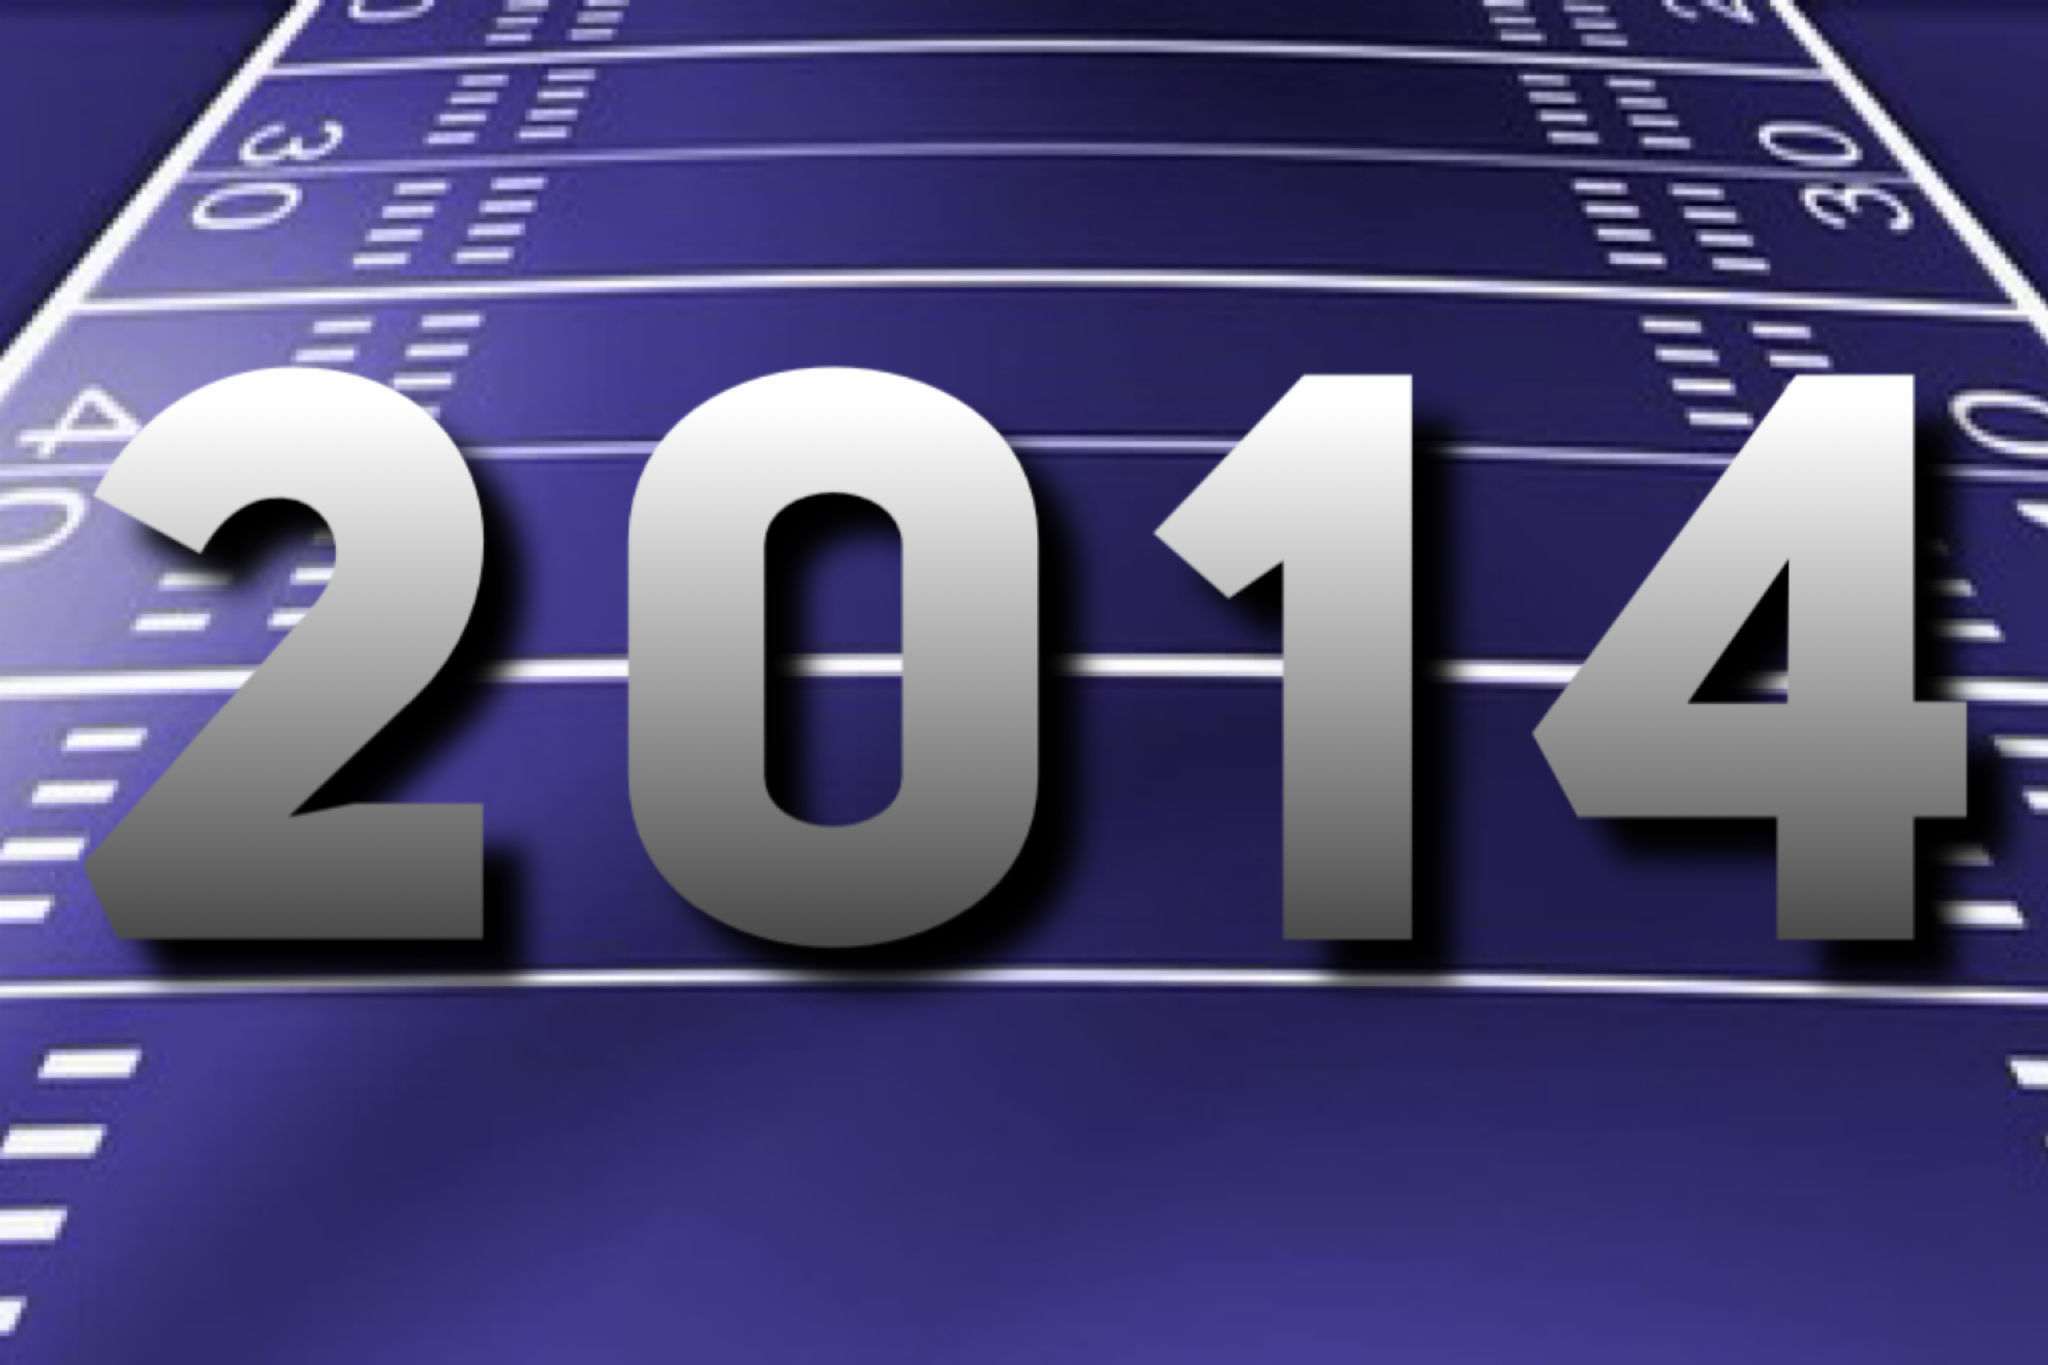 2014 Offensive Line Grading